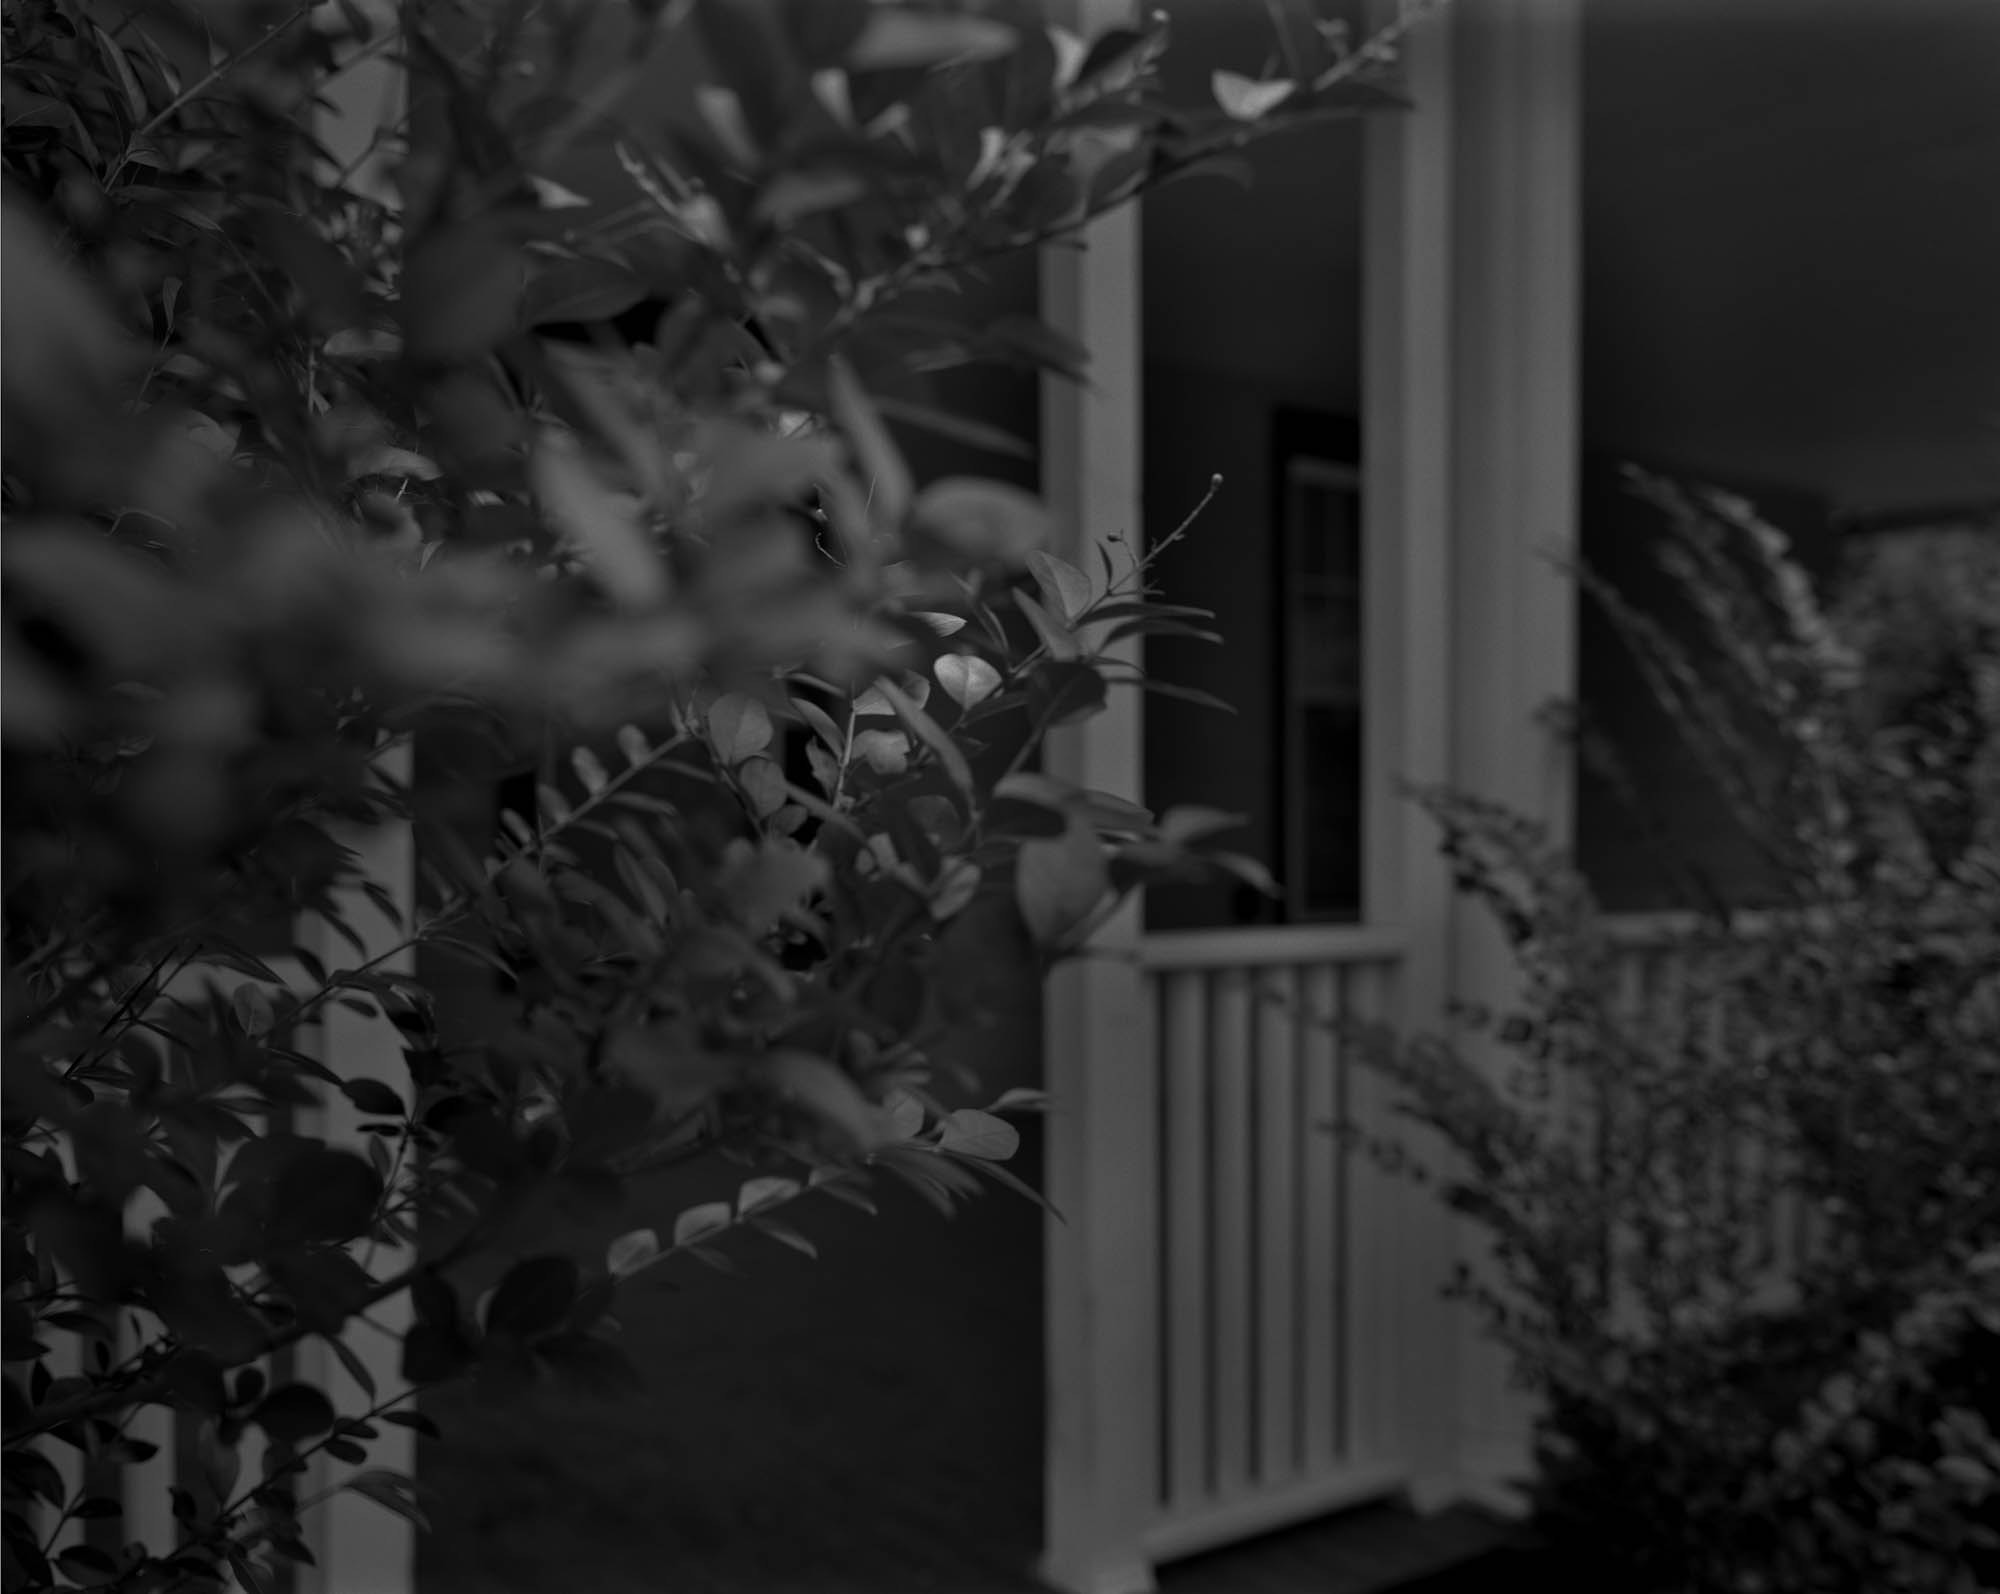 A black and white photo of a white front porch, with leaves from a bush or tree in the foreground.